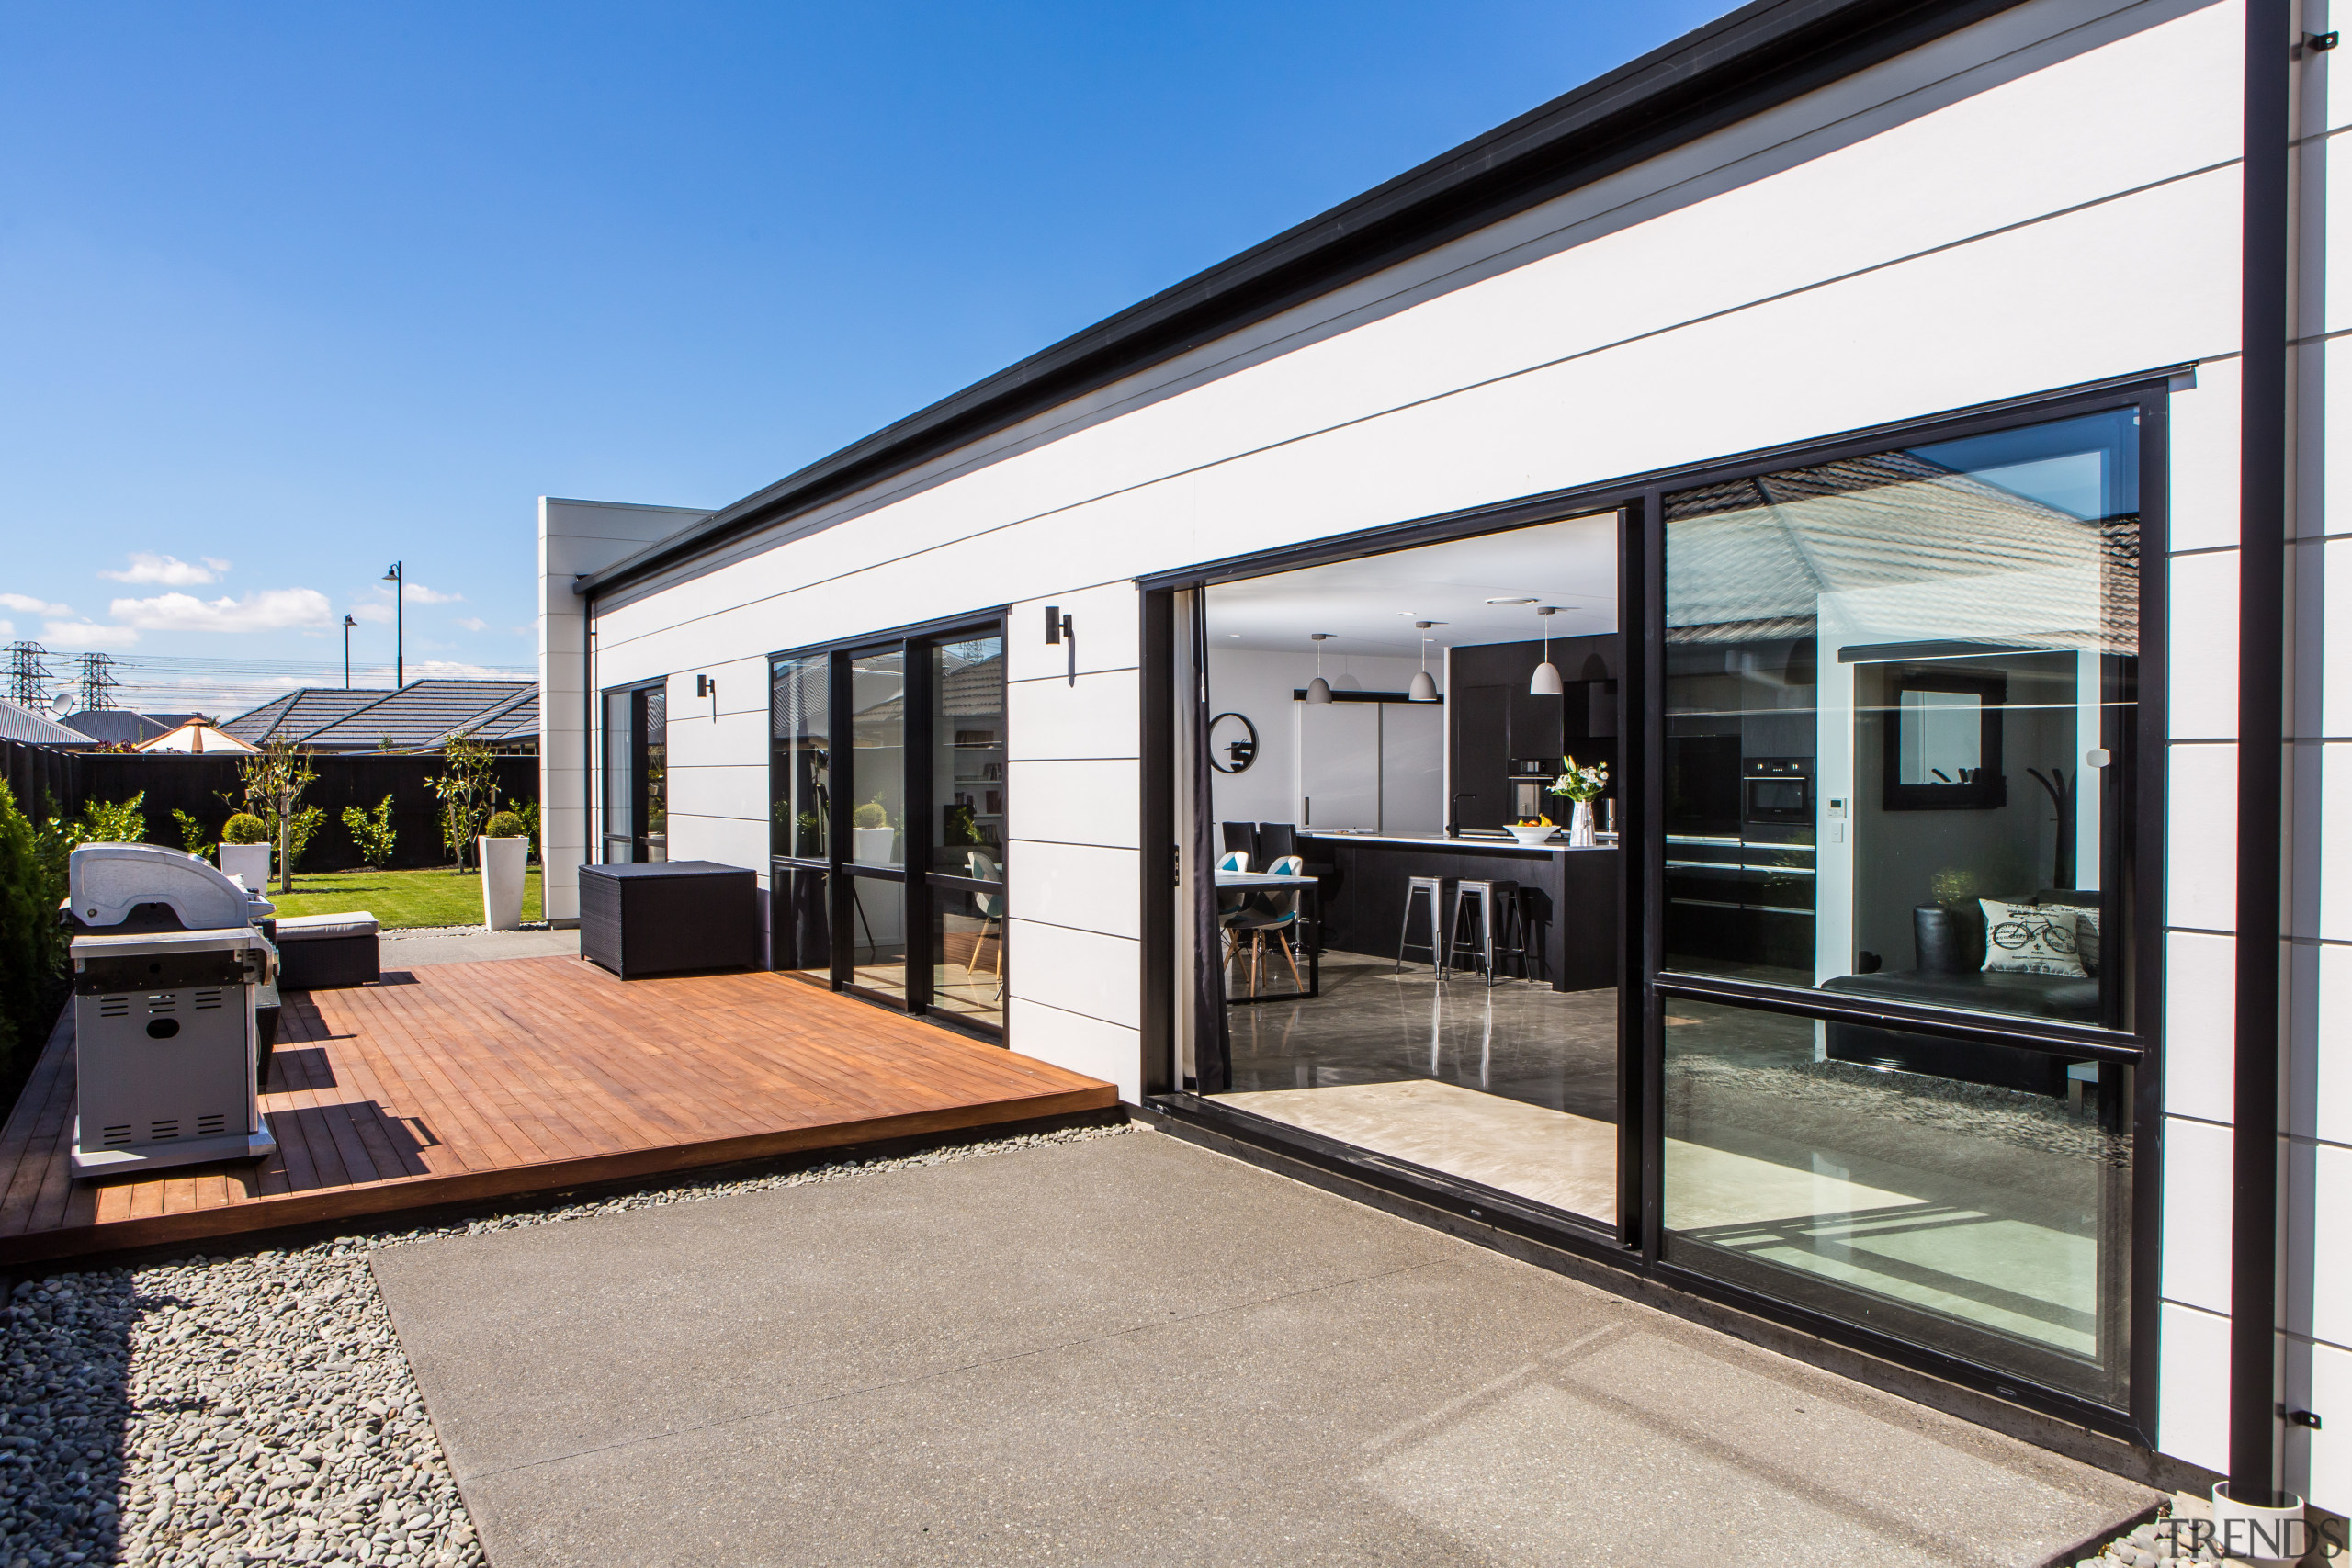 The use of prefabricated technologies can speed up architecture, door, house, real estate, window, gray